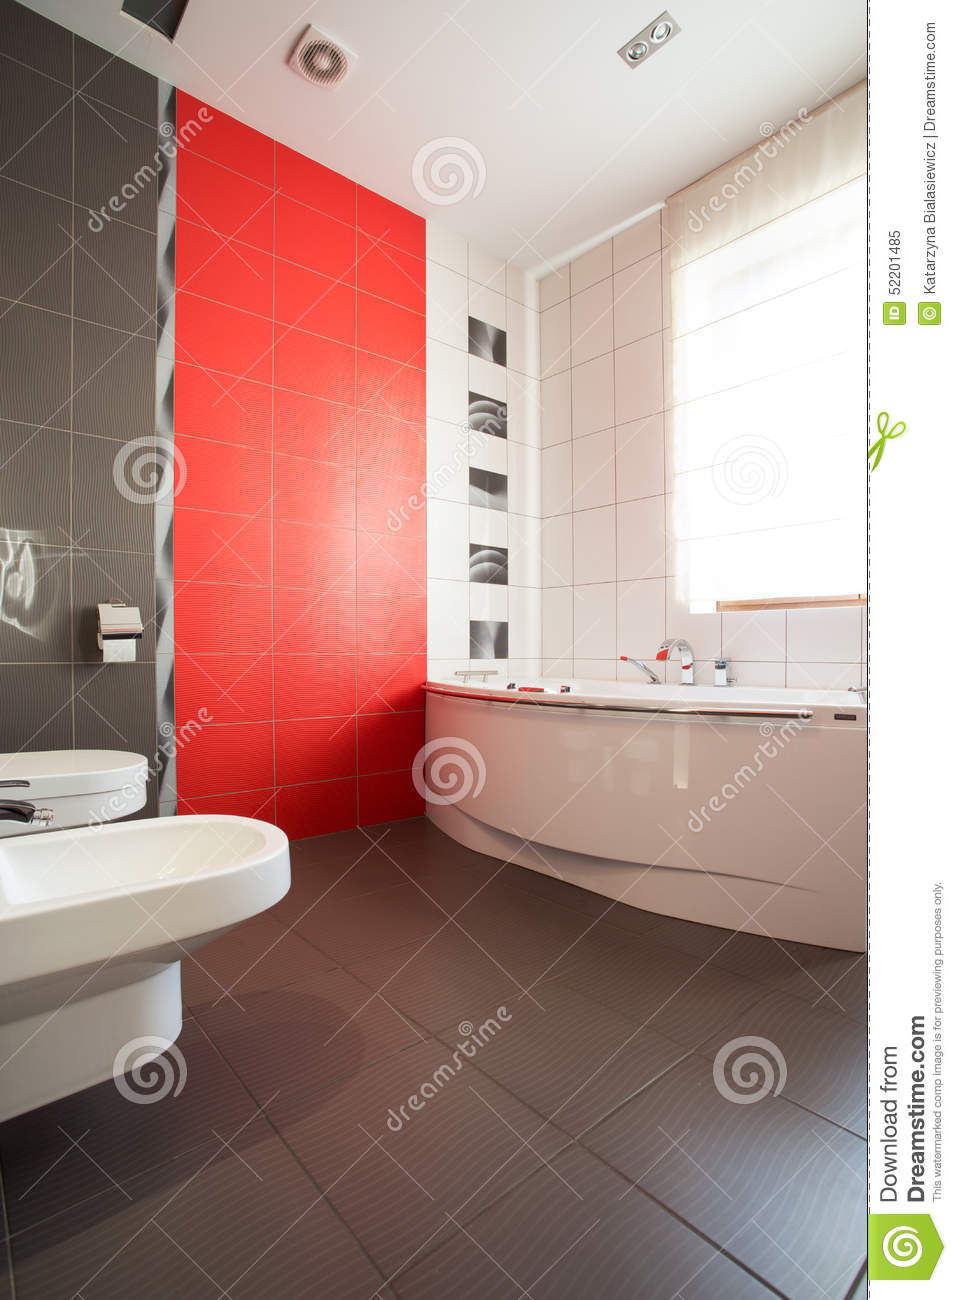 Grey and red bathroom stock image image of interior 52201485 - Salle de bain rouge et blanc ...